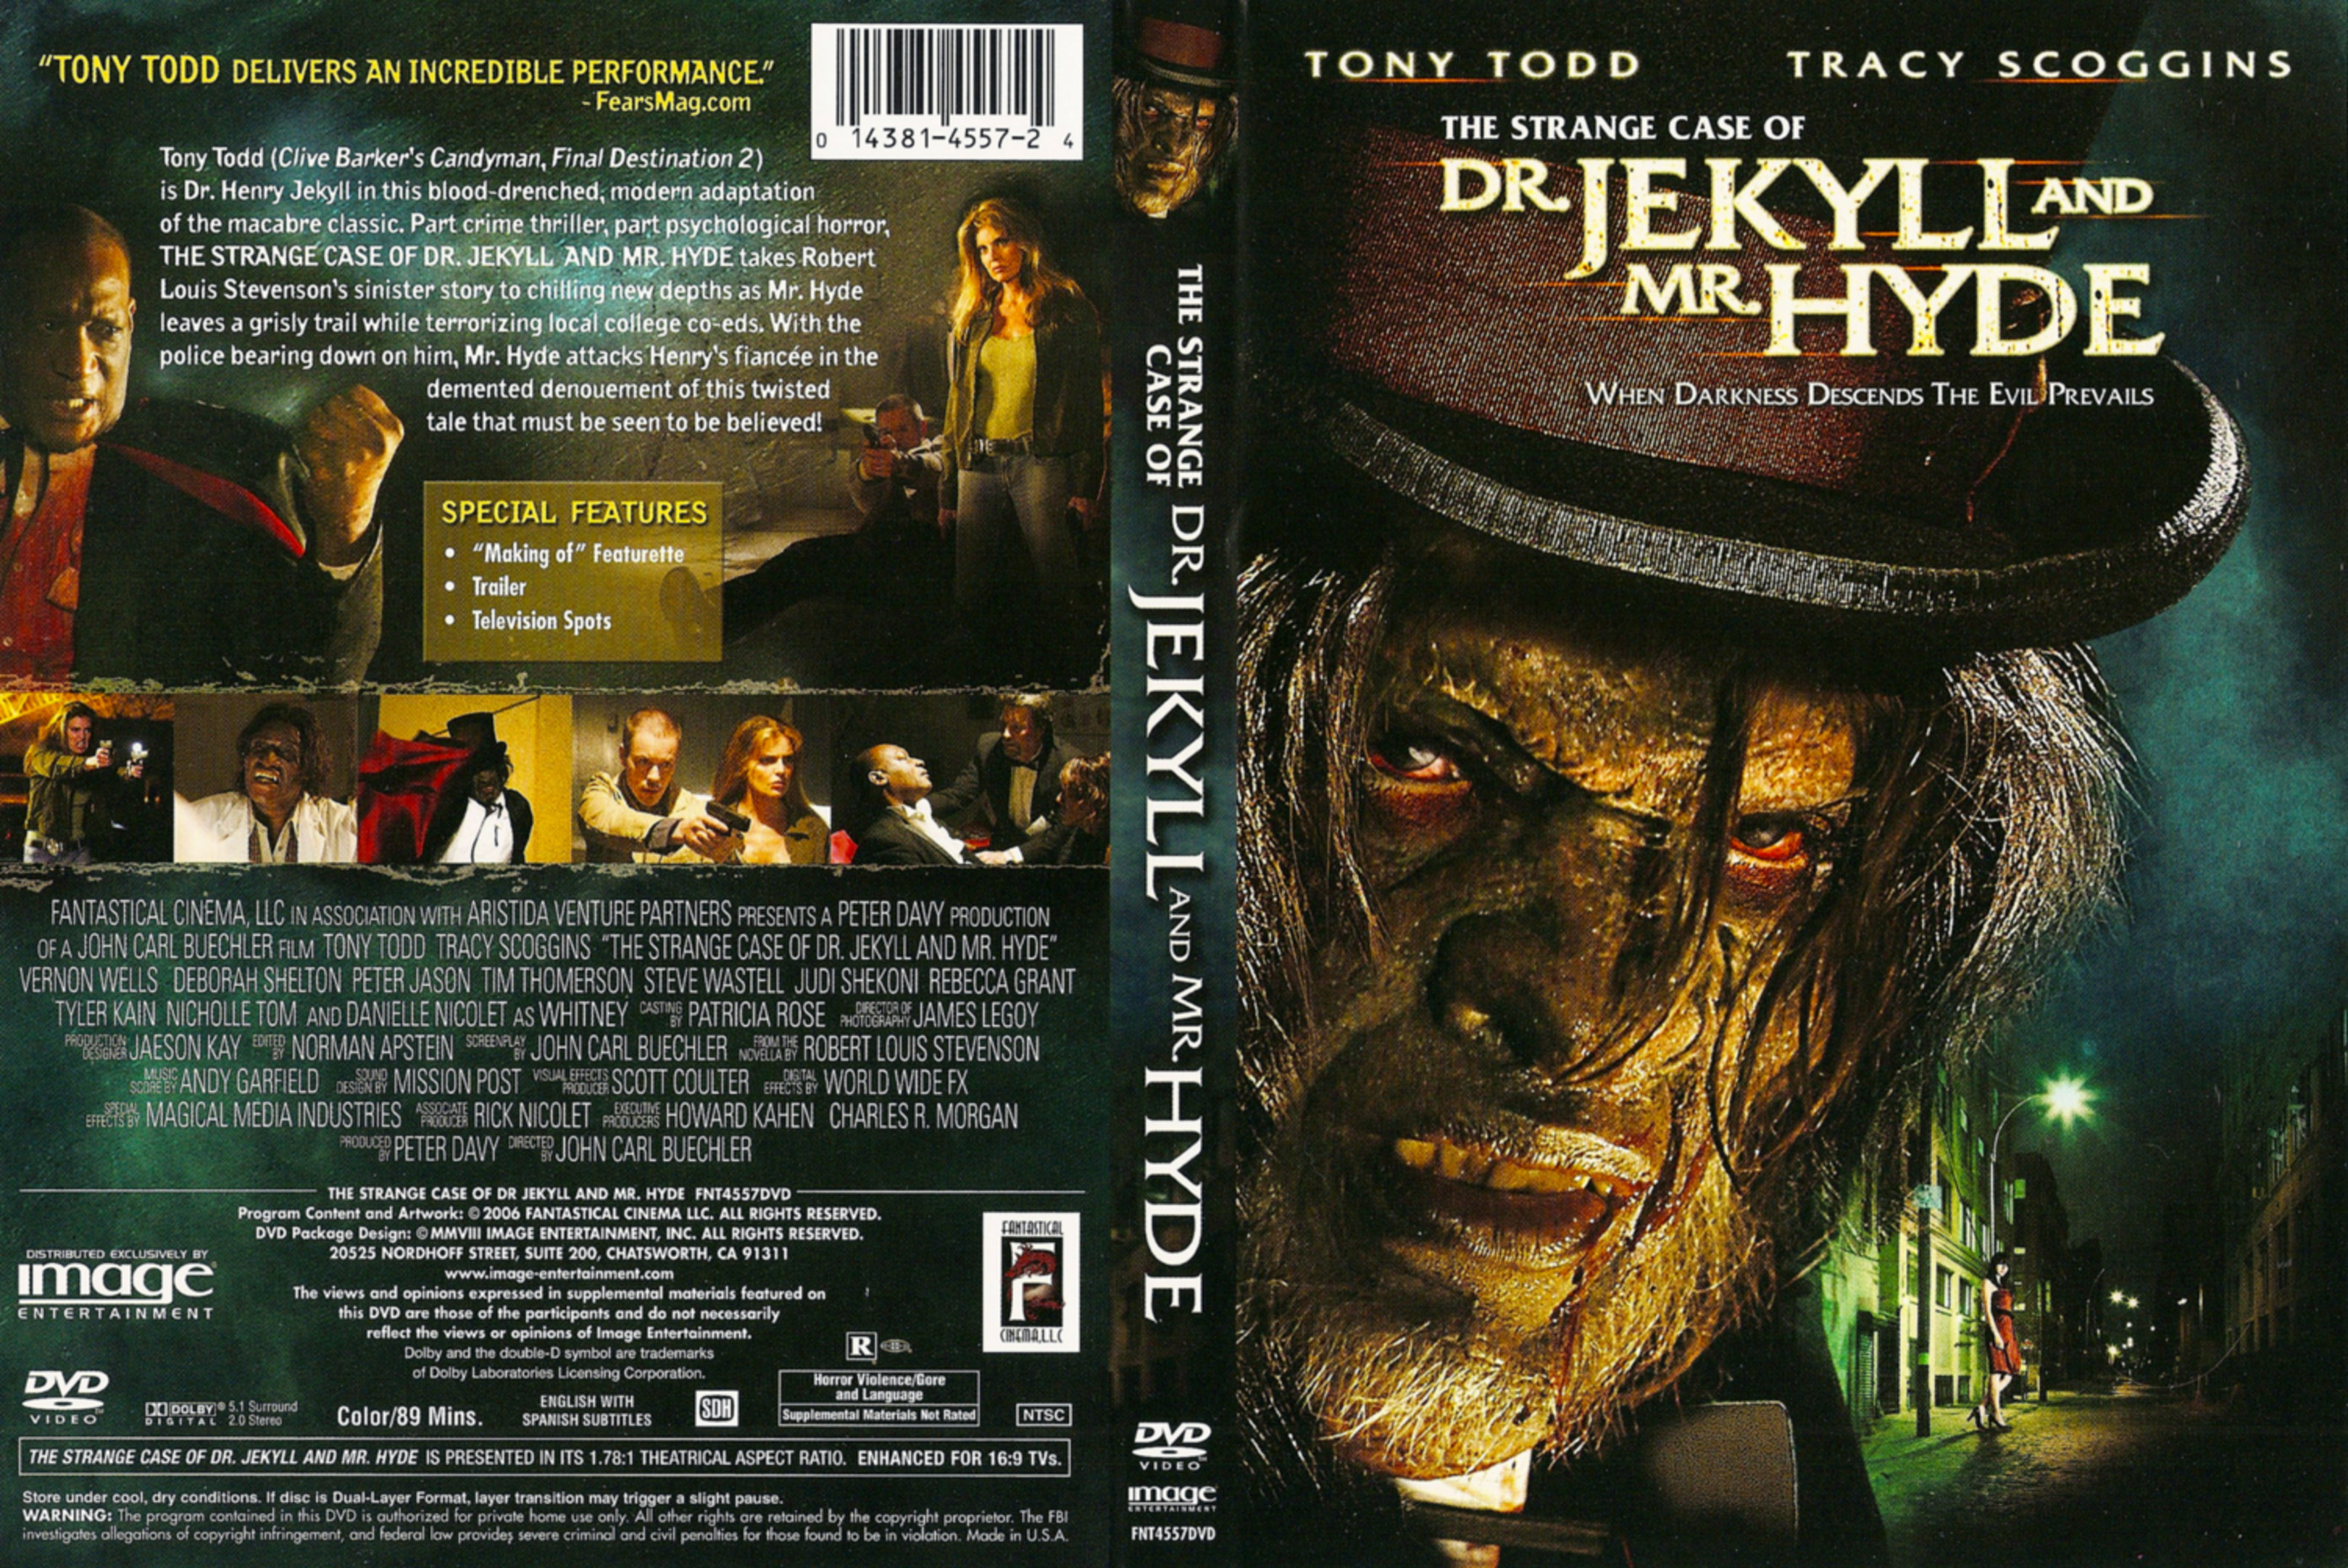 the strange case of dr jekyll and mr hyde cannot be considered a warning about science